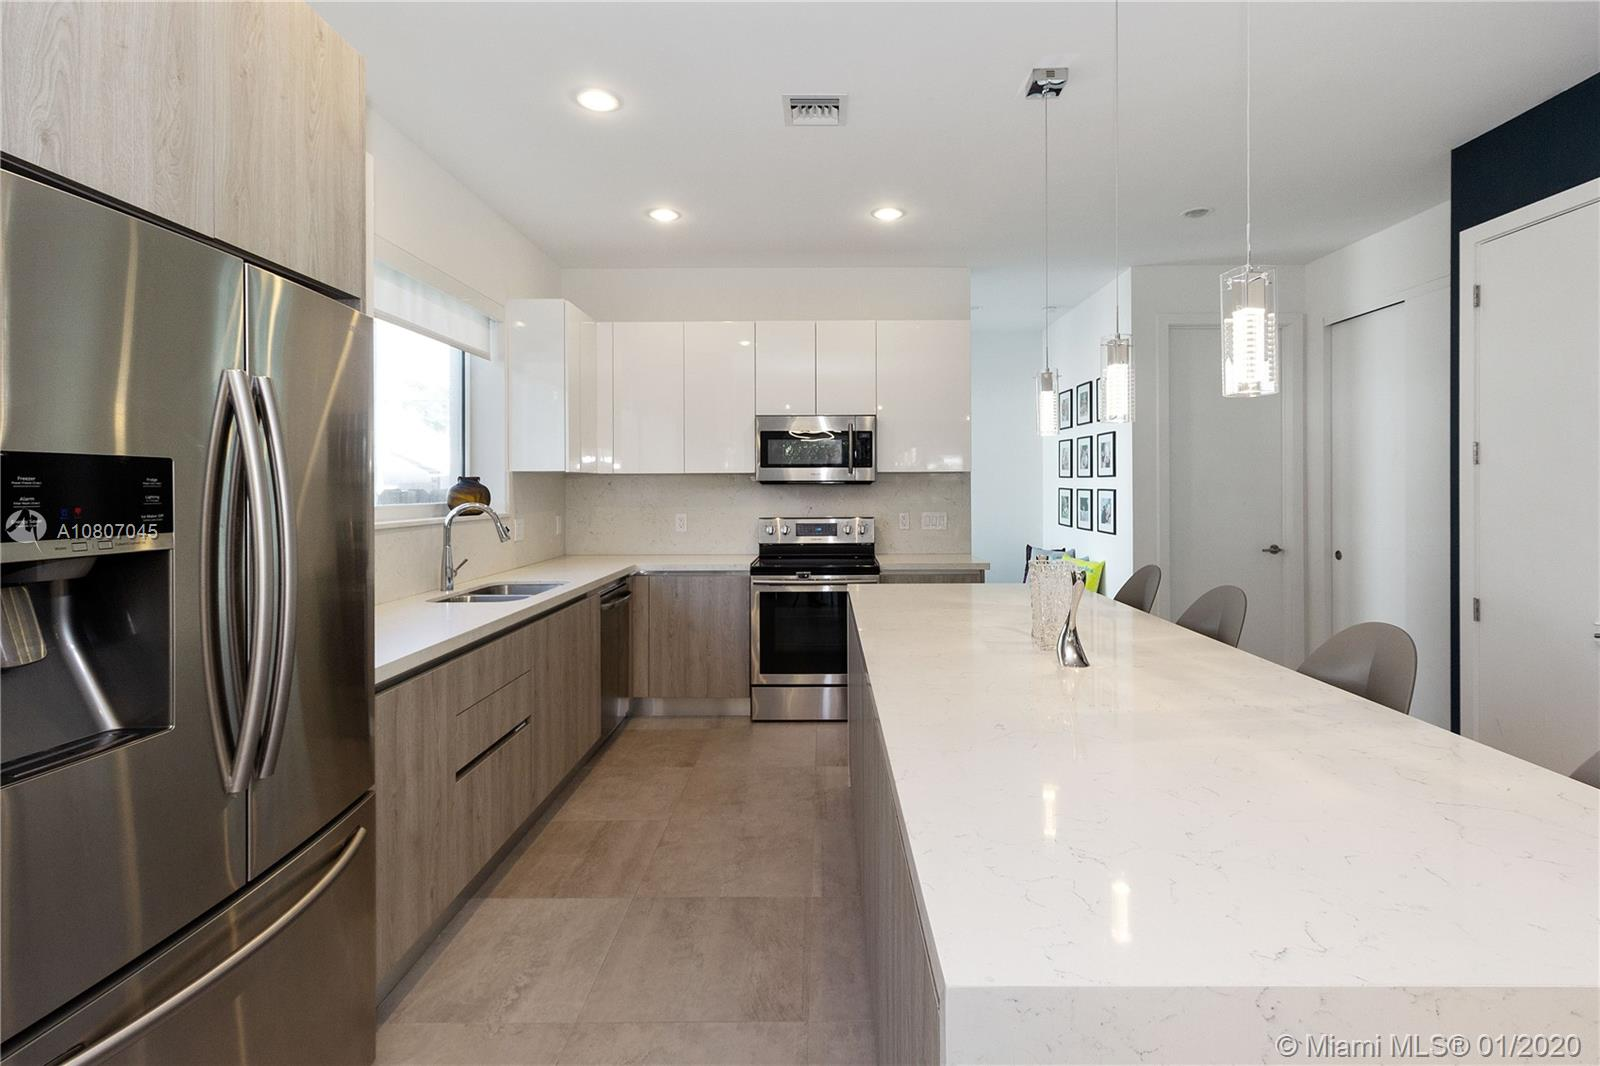 Walk to Las Olas Blvd from this '16 gorgeous Tarpon River Certified Smart Home. METAL ROOF, Spacious Open Floorplan, High Ceilings, & Tons of Natural Light from the IMPACT WINDOWS. High End finishes: Porcelanosa porcelain flooring & cabinetry throughout, LED Fixtures, High End Custom Closets & Solar Roller Shades. Fenced & Landscaped Backyard w/ Black Bamboo & Artificial Turf! Wifi Garage, Alarm, Nest & Ring. NO HOA! Tarpon River is Ft. Lauderdale's new hot spot walking distance to trendy new Restaurants (The Grind, Tarpon River Brewing, Hardy Park Bistro) & Hardy Park Tennis / Playground & new South Side Cultural Arts Center! Close to Downtown, Sea & Airport, Beach, I95! Builder's blueprints attached show larger sq ft than in MLS. Liv Area: 2378; Tot Area: 3232. Buyers may verify.